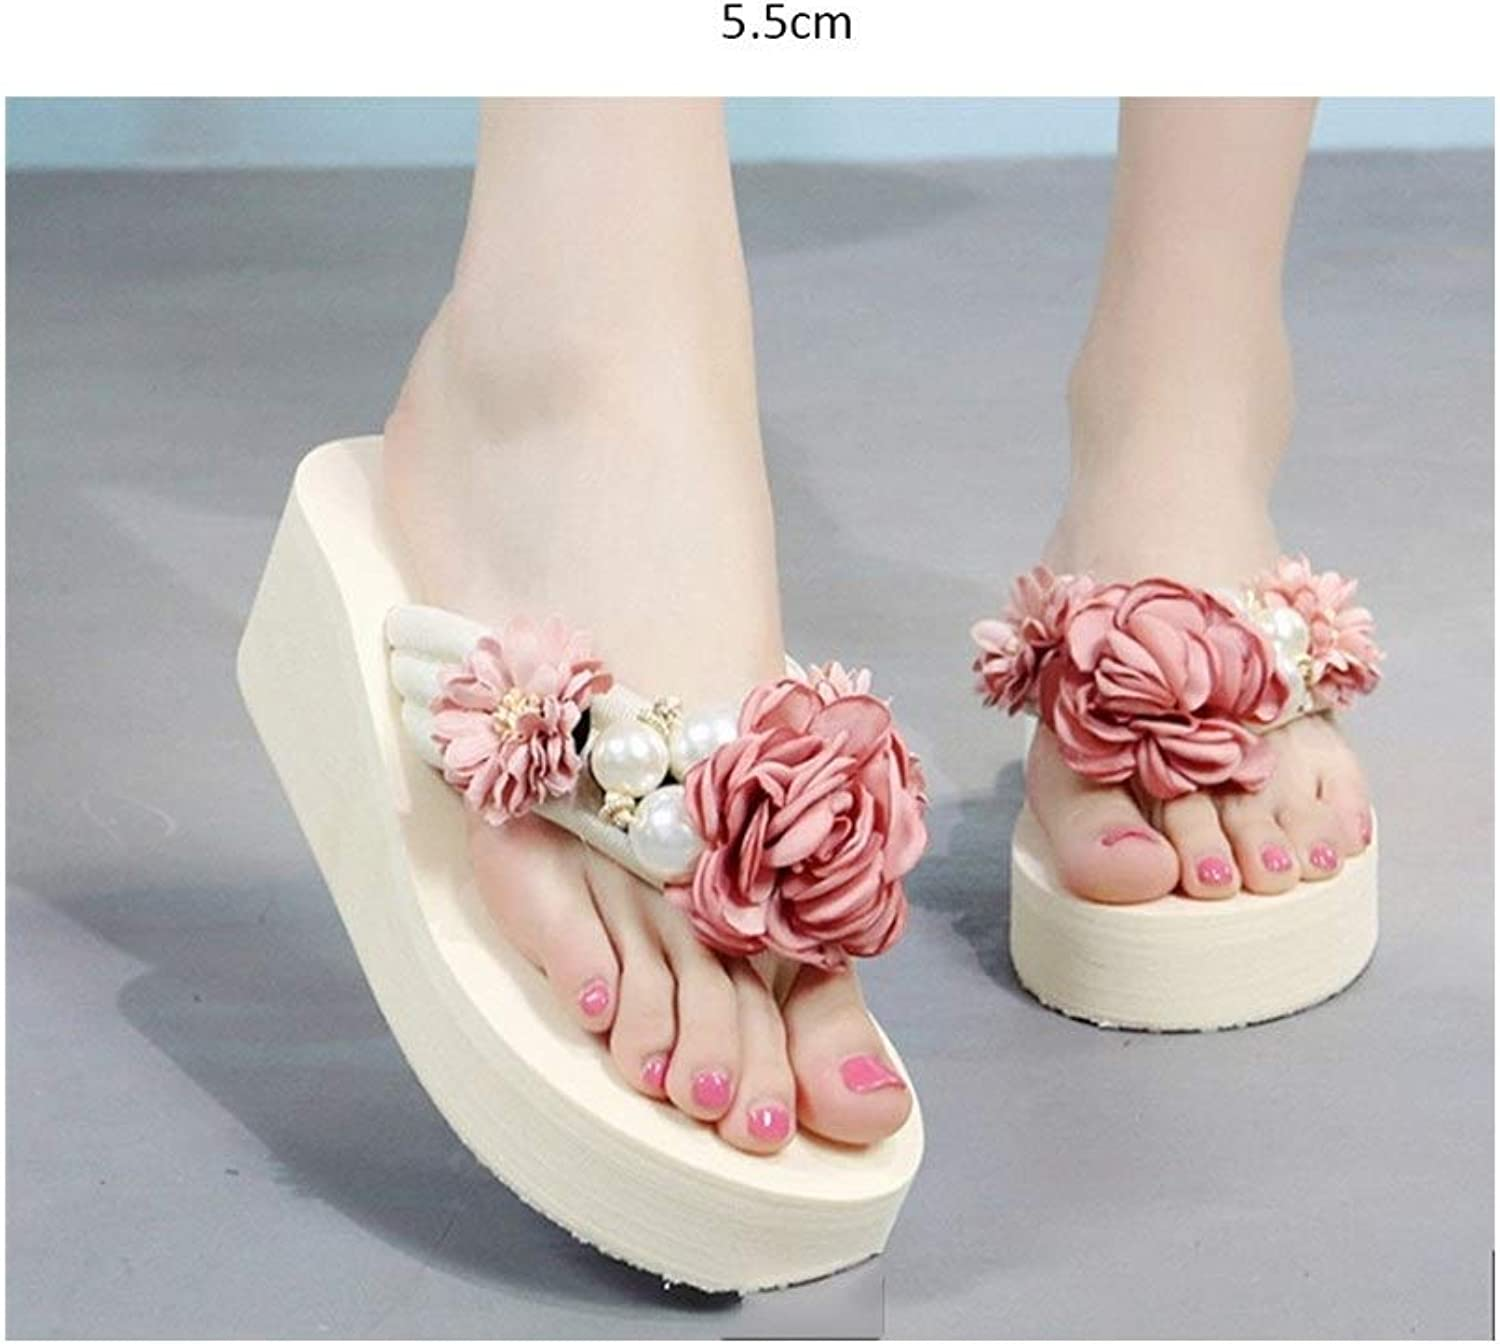 DYFYMX Slope with flip-Flops, Female Summer wear flip Sandals, Fashion Flat Beach shoes. Fashion Pink, Size   36